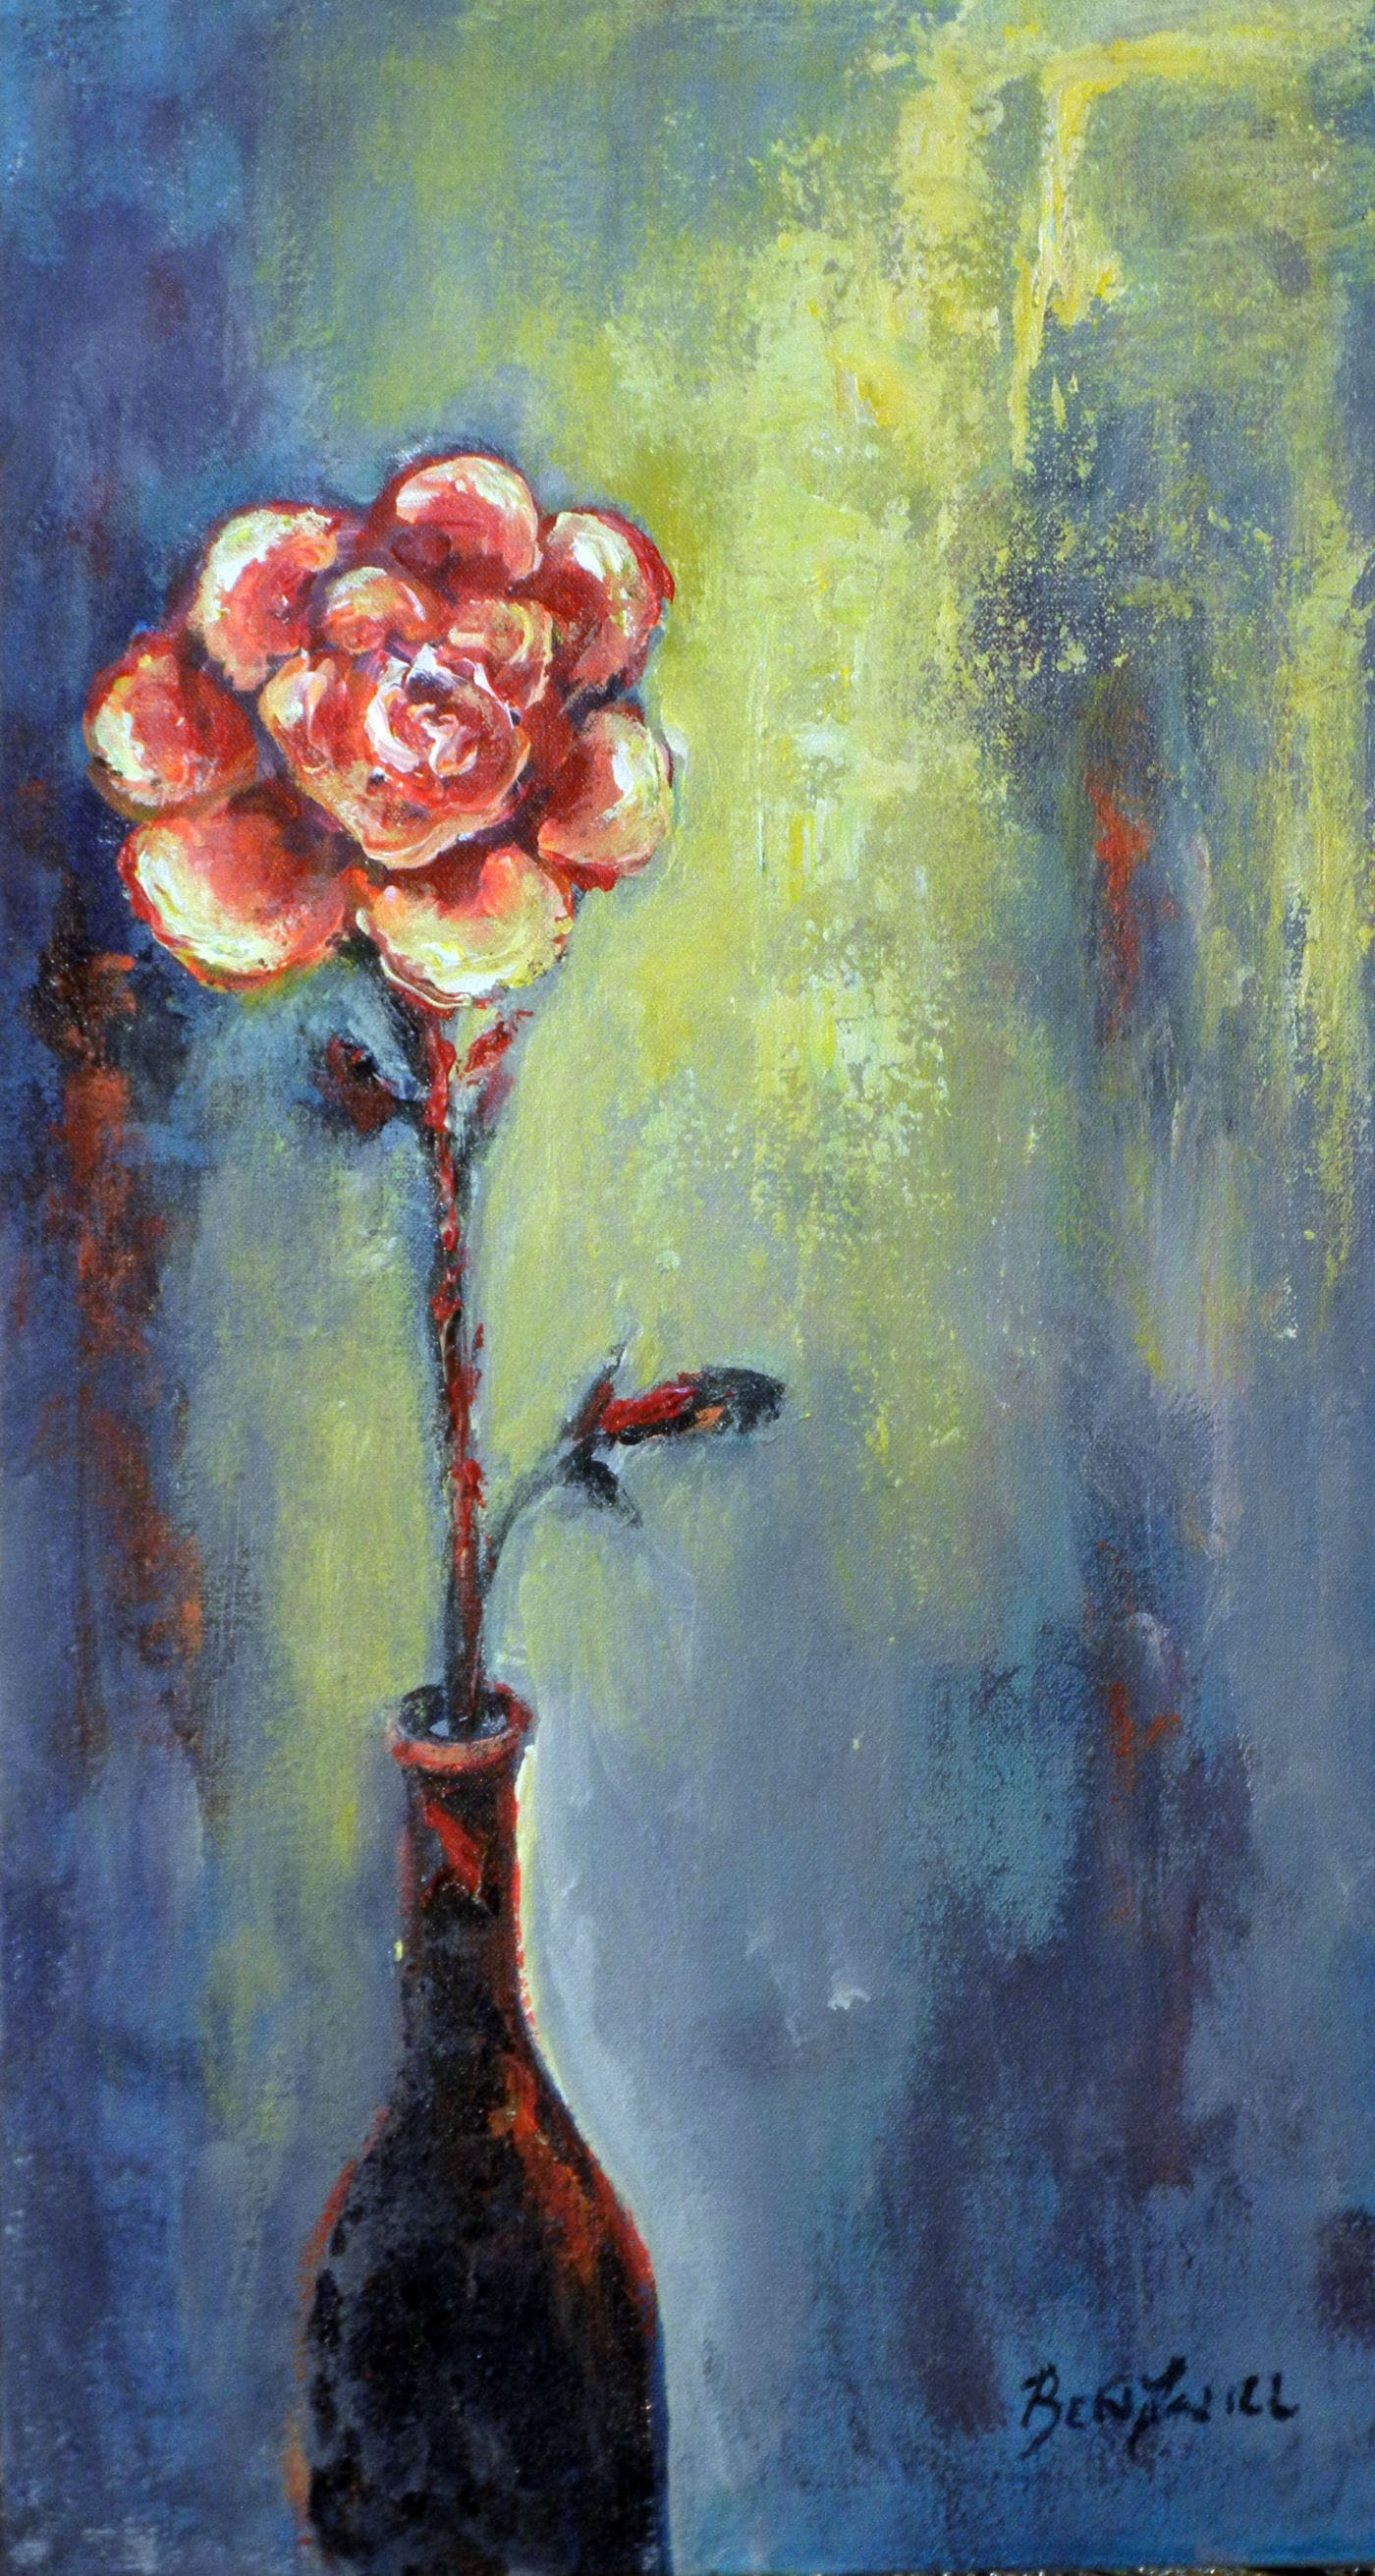 ABSTRACT Art ORIGINAL Painting Rose in Vase Modern Artwork 22 x 12 by BenWill